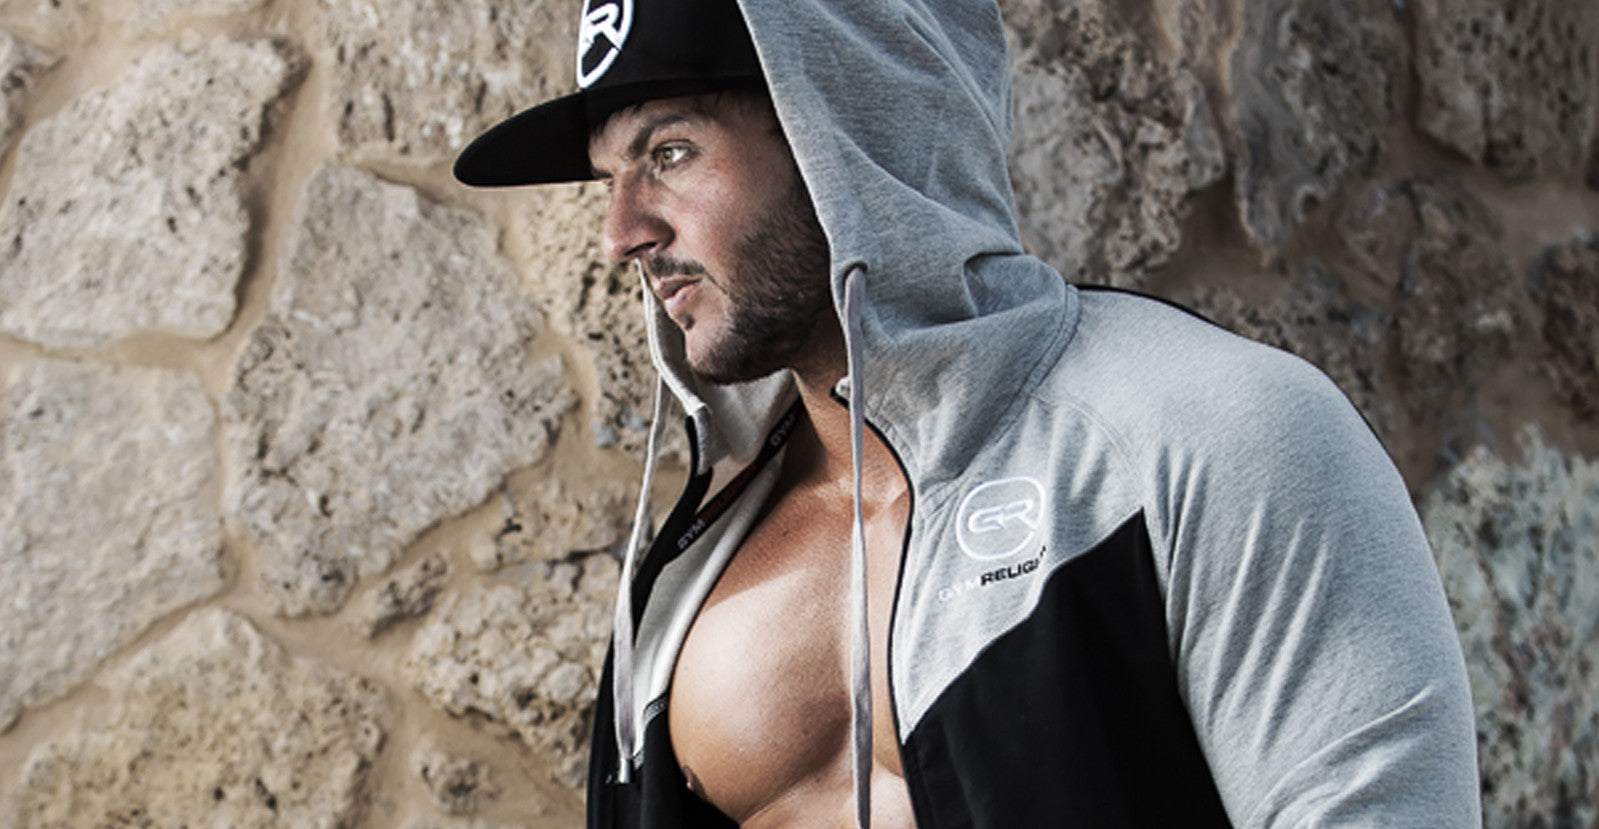 THE NEXT GENERATION IN FITNESS APPAREL